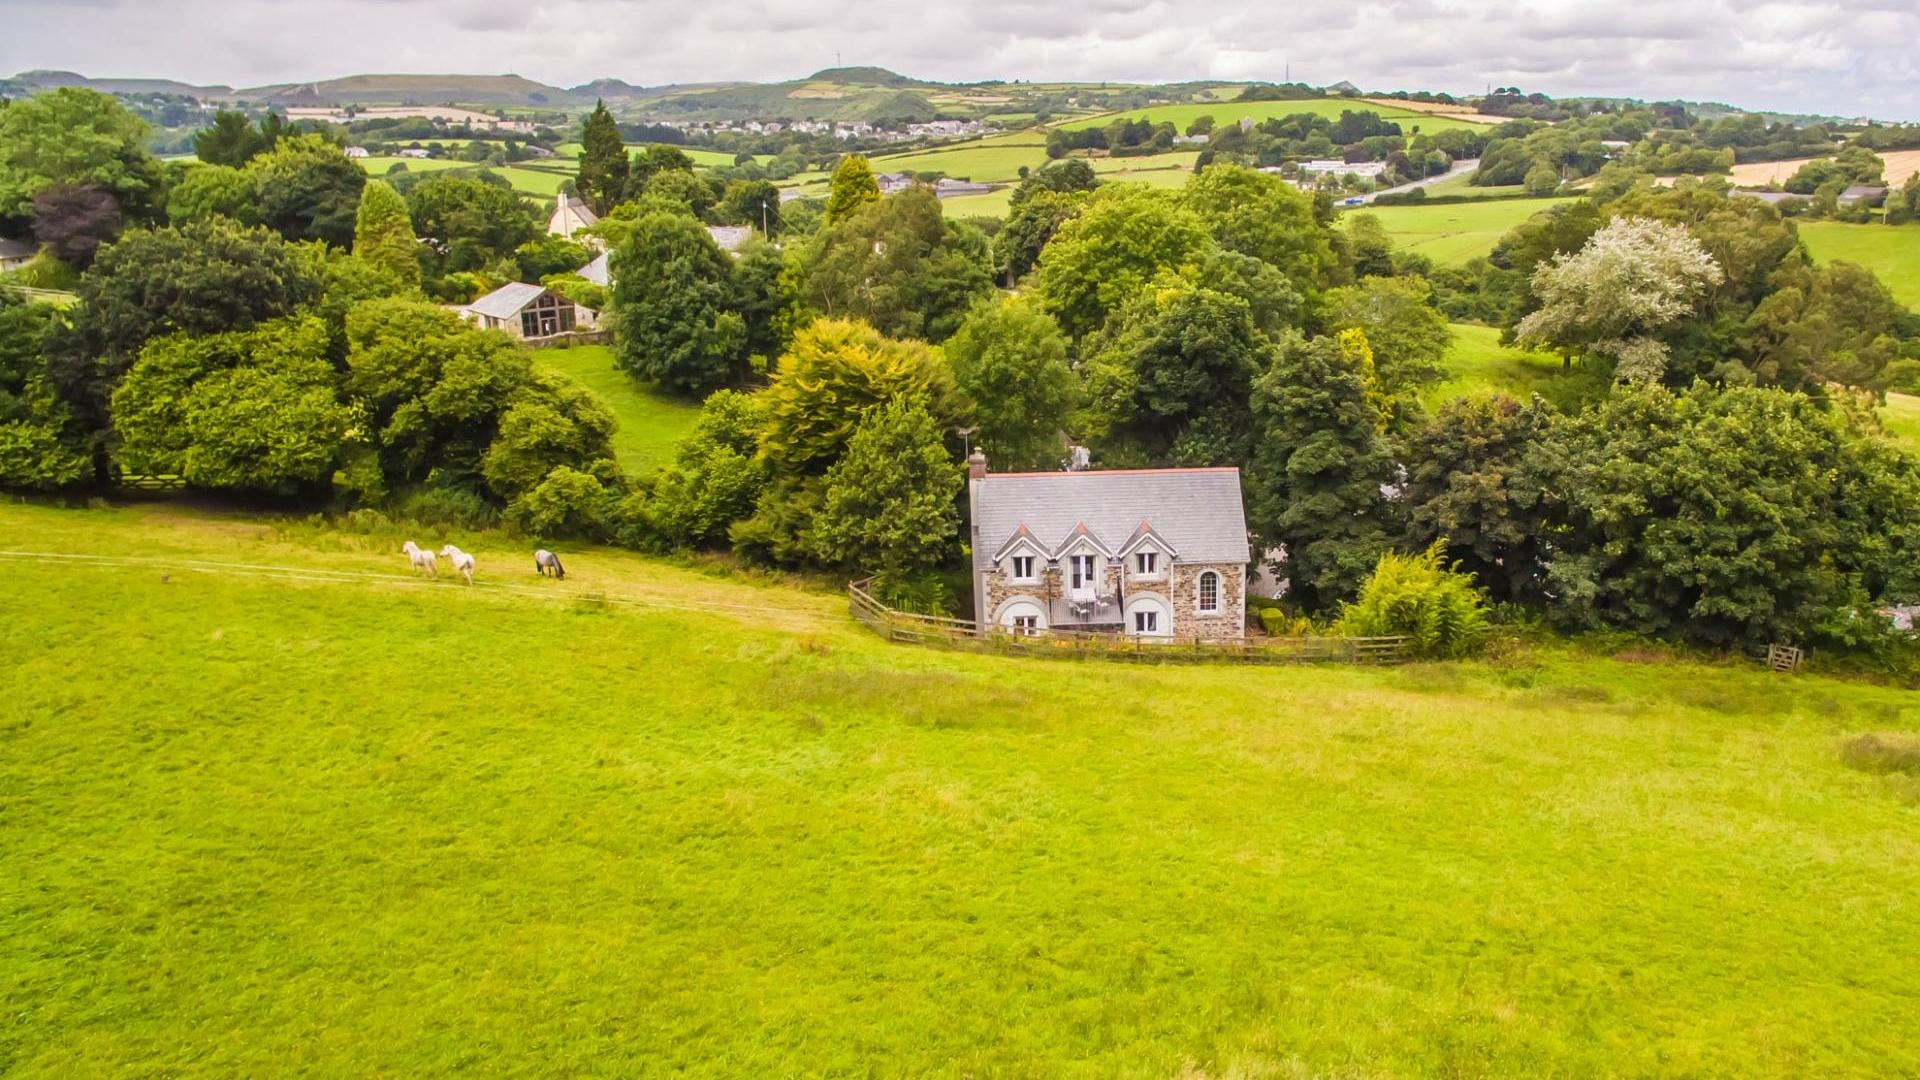 3 bedroom child-friendly holiday cottage in Cornwall - PSHH